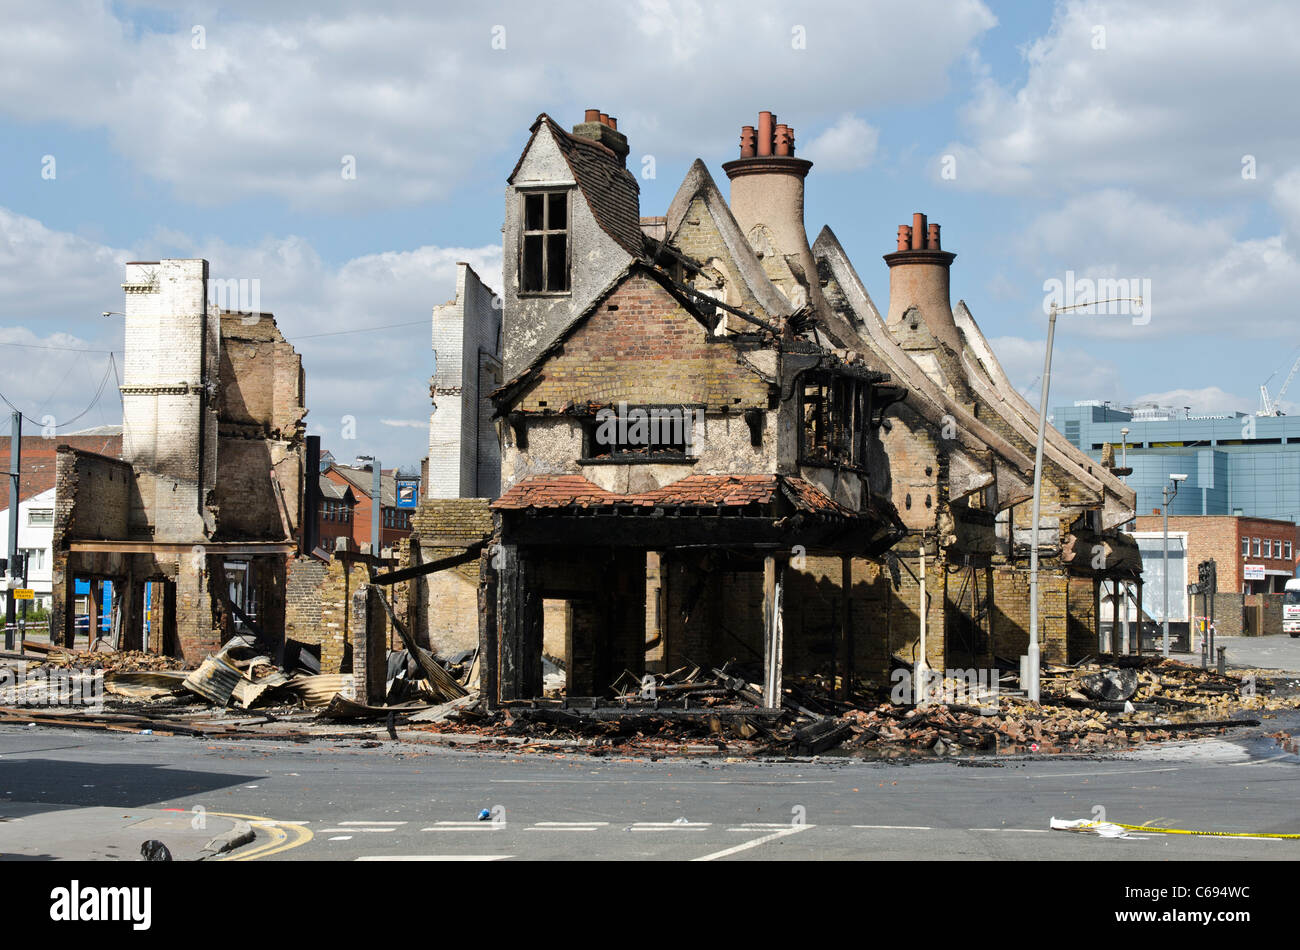 Burnt out Reeves Furnishing store Croydon Riots London Uk - Stock Image